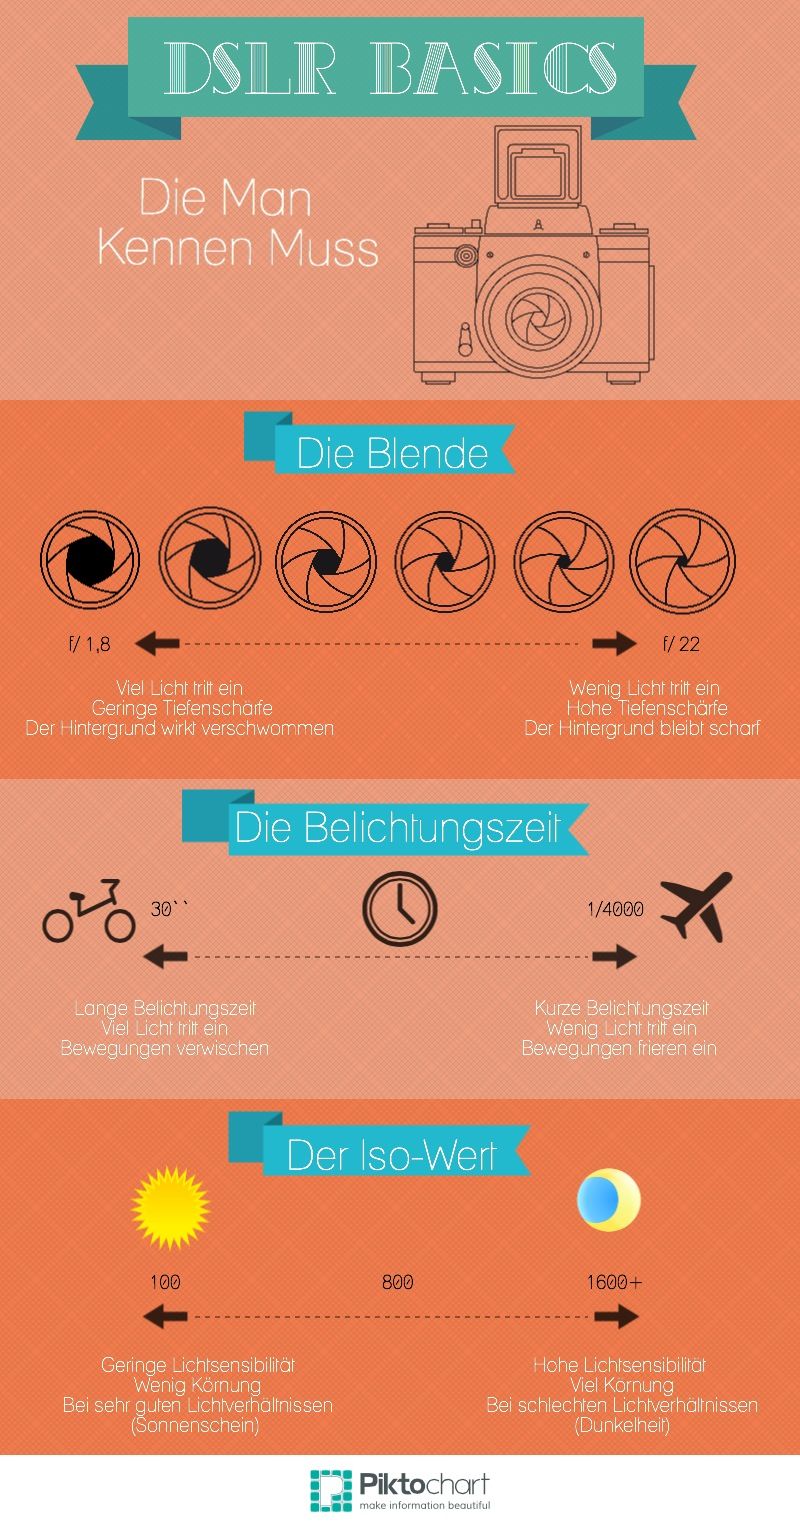 DSLR Basics infographic